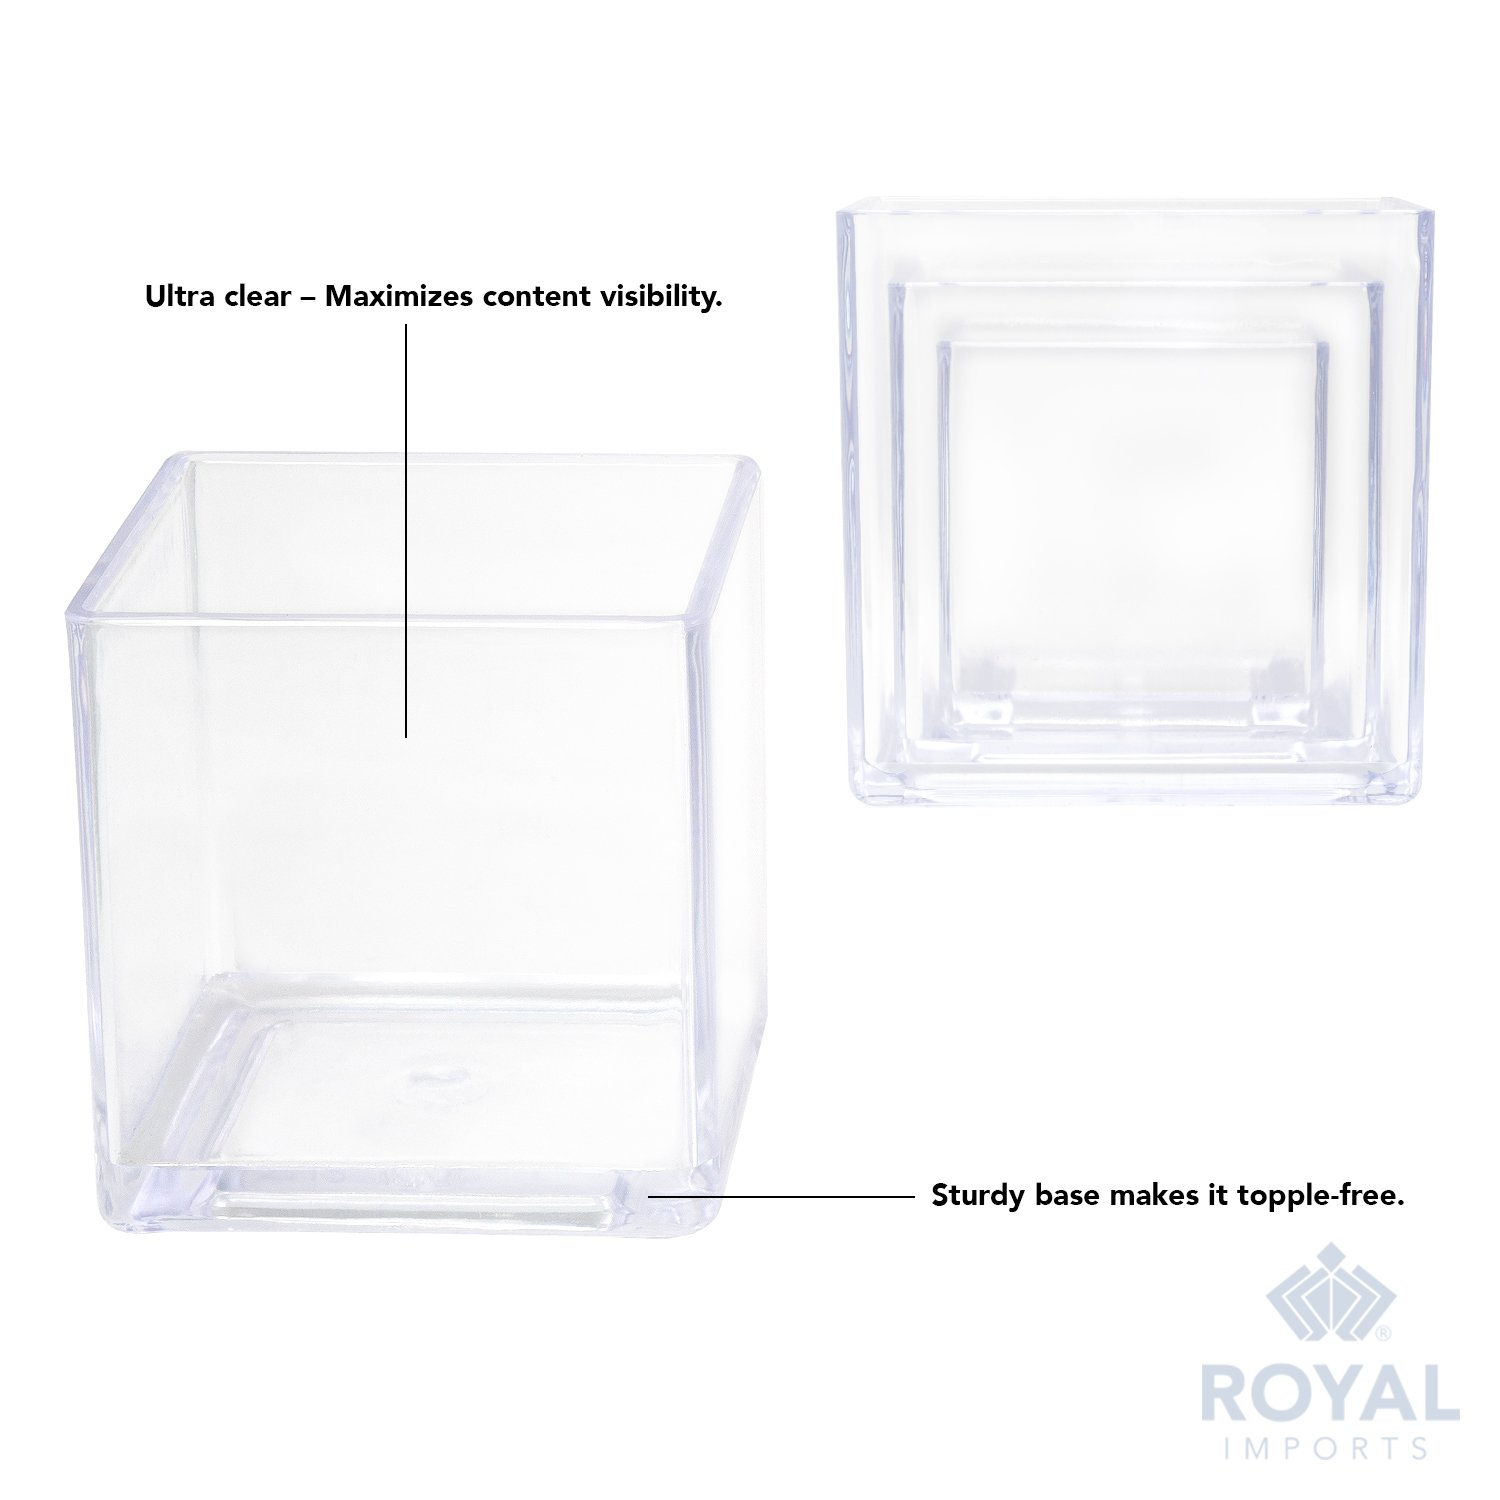 6 Tall 6x6 Cube Shape Royal Imports Flower Acrylic Vase Decorative Centerpiece for Home or Wedding Break Resistant